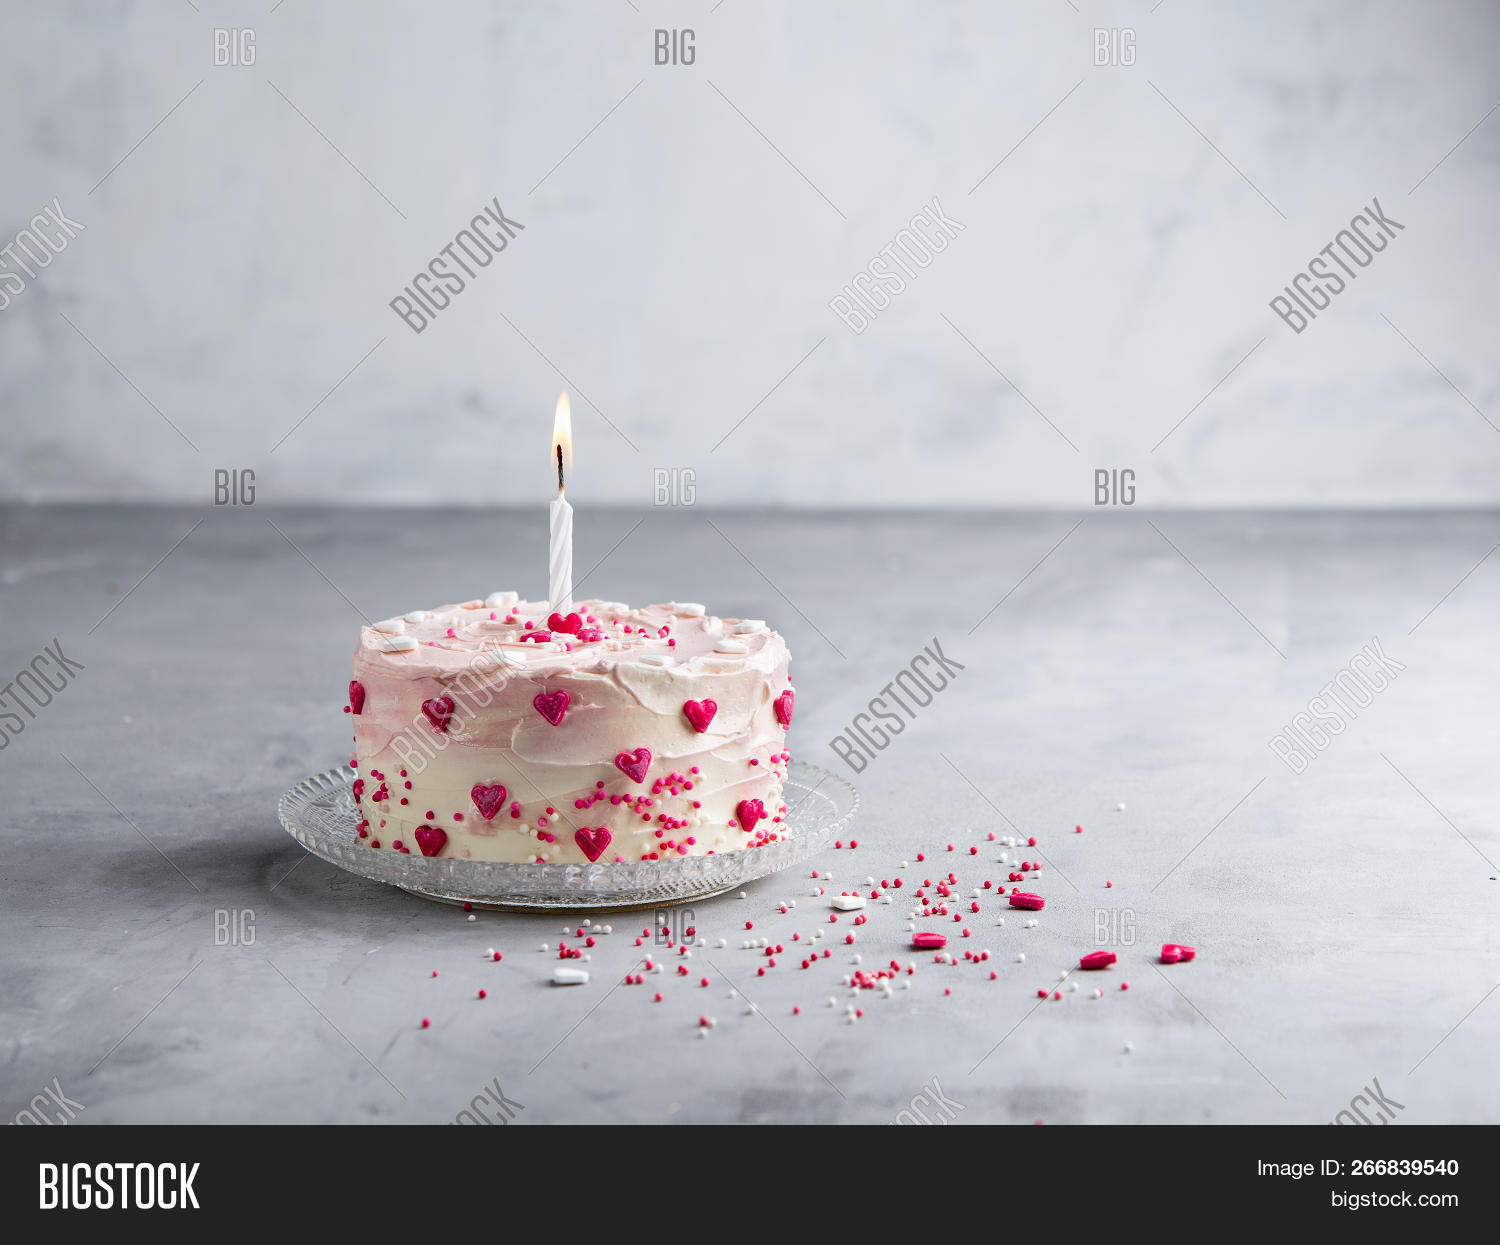 Cake With Small Hearts And Colorful Sprinkles One Candle On Light Background Romantic Love